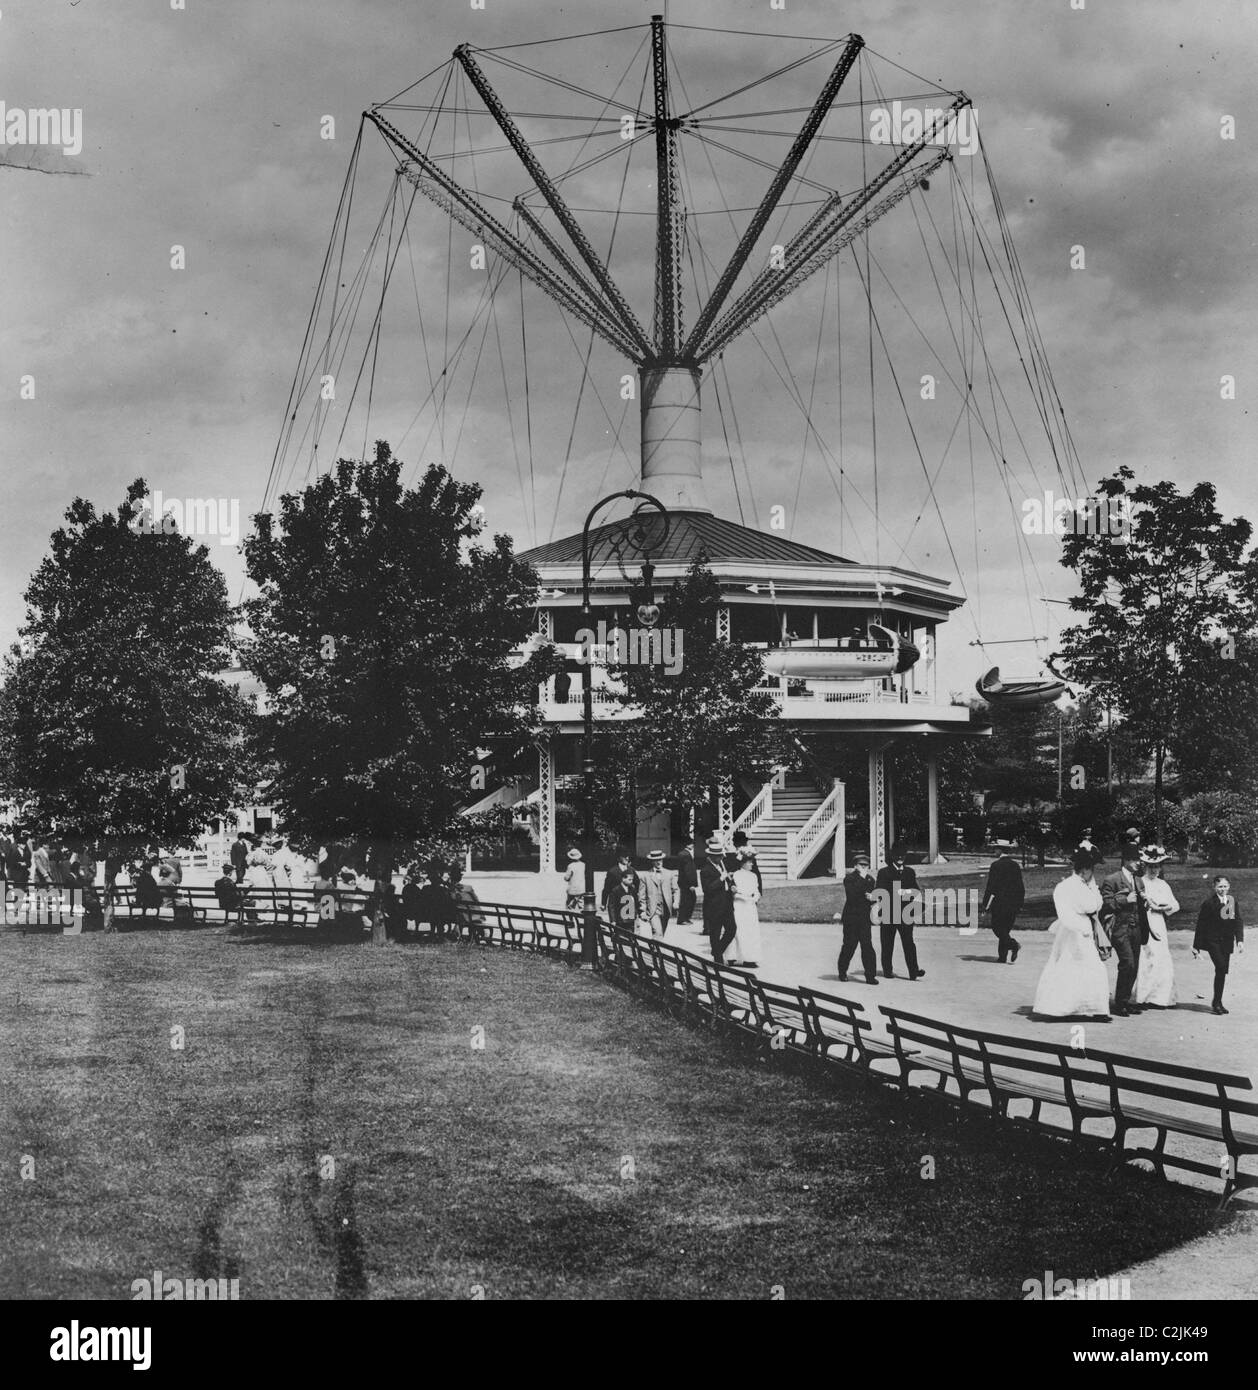 2ad2cfd4e6041 Willow Grove Park airships, Willow Grove, Pa Stock Photo: 36060201 ...